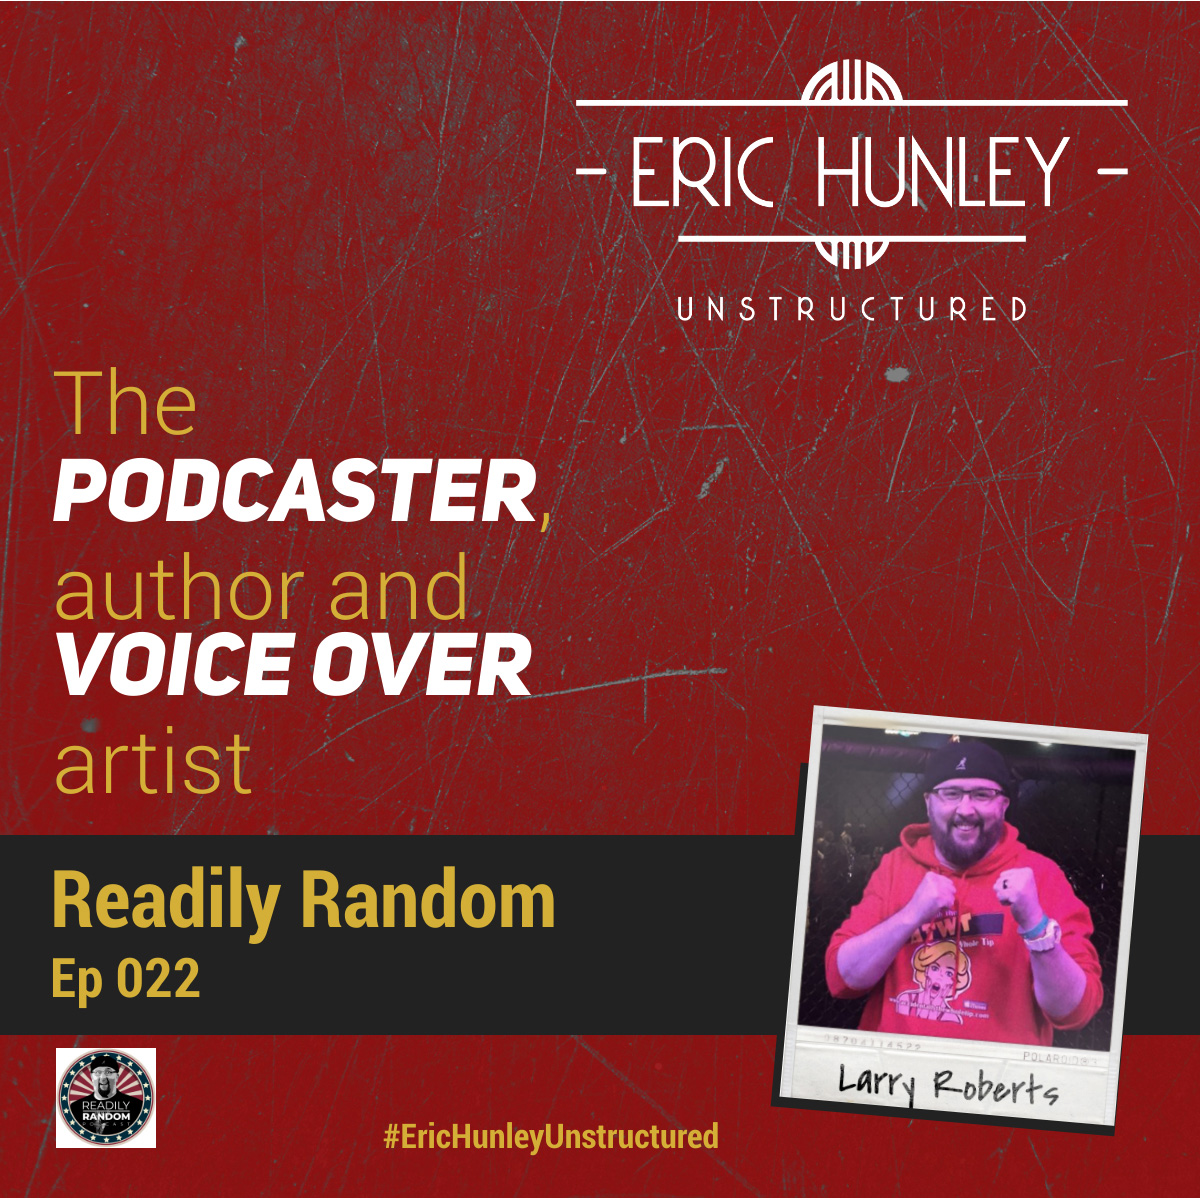 Eric Hunley Unstructured Podcast - 022 Larry Roberts Square Post